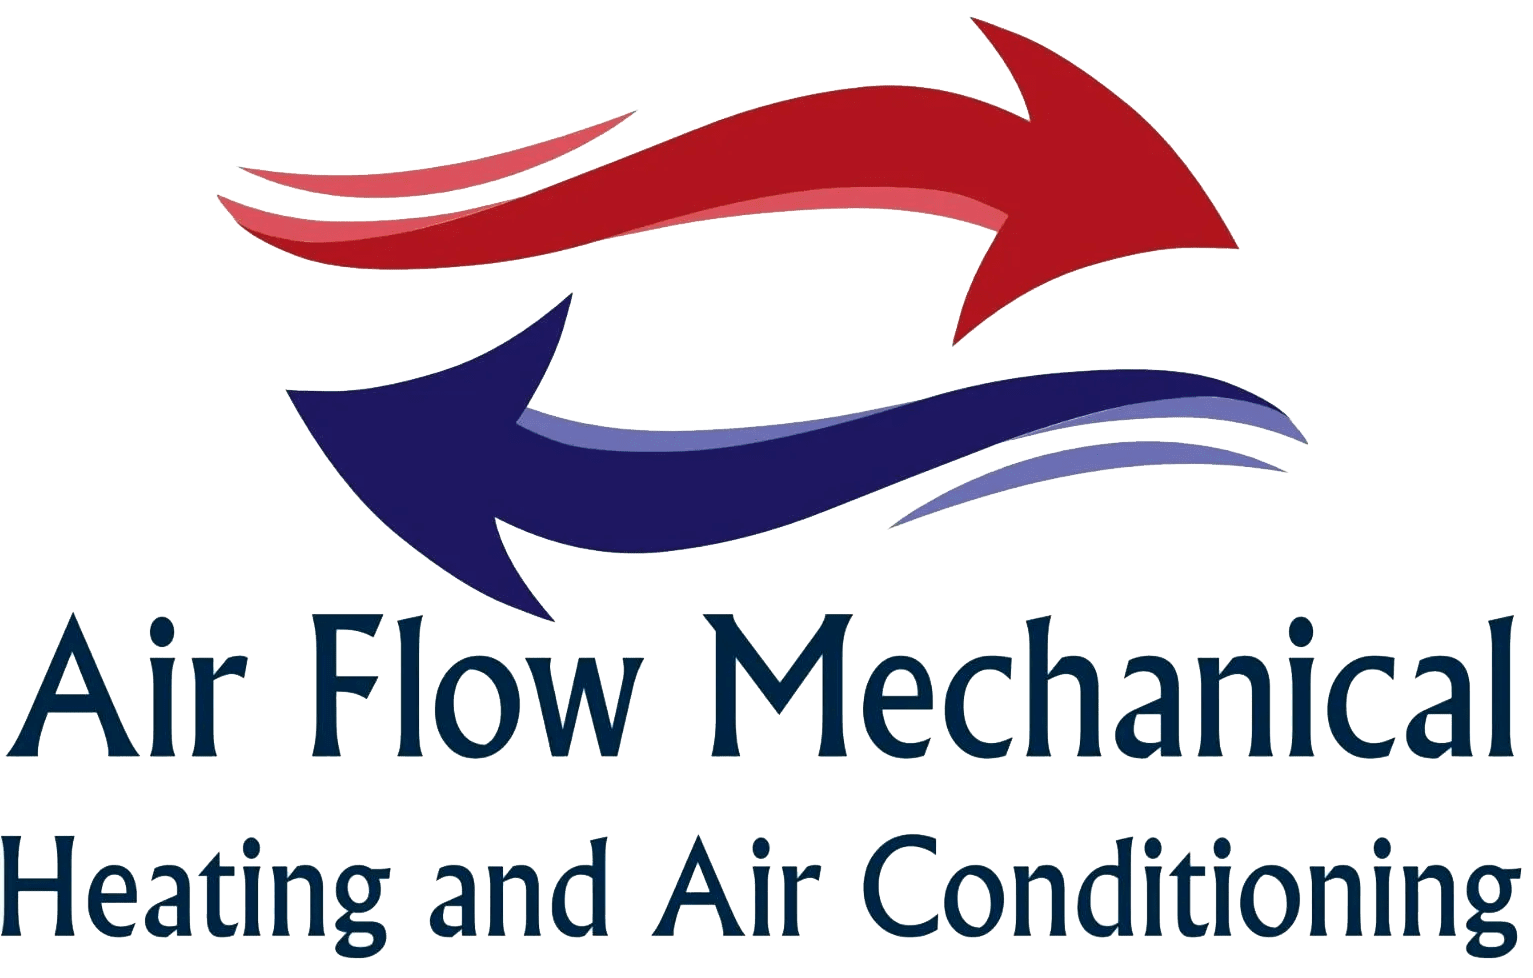 Air Flow Mechanical Heating & Air Conditioning